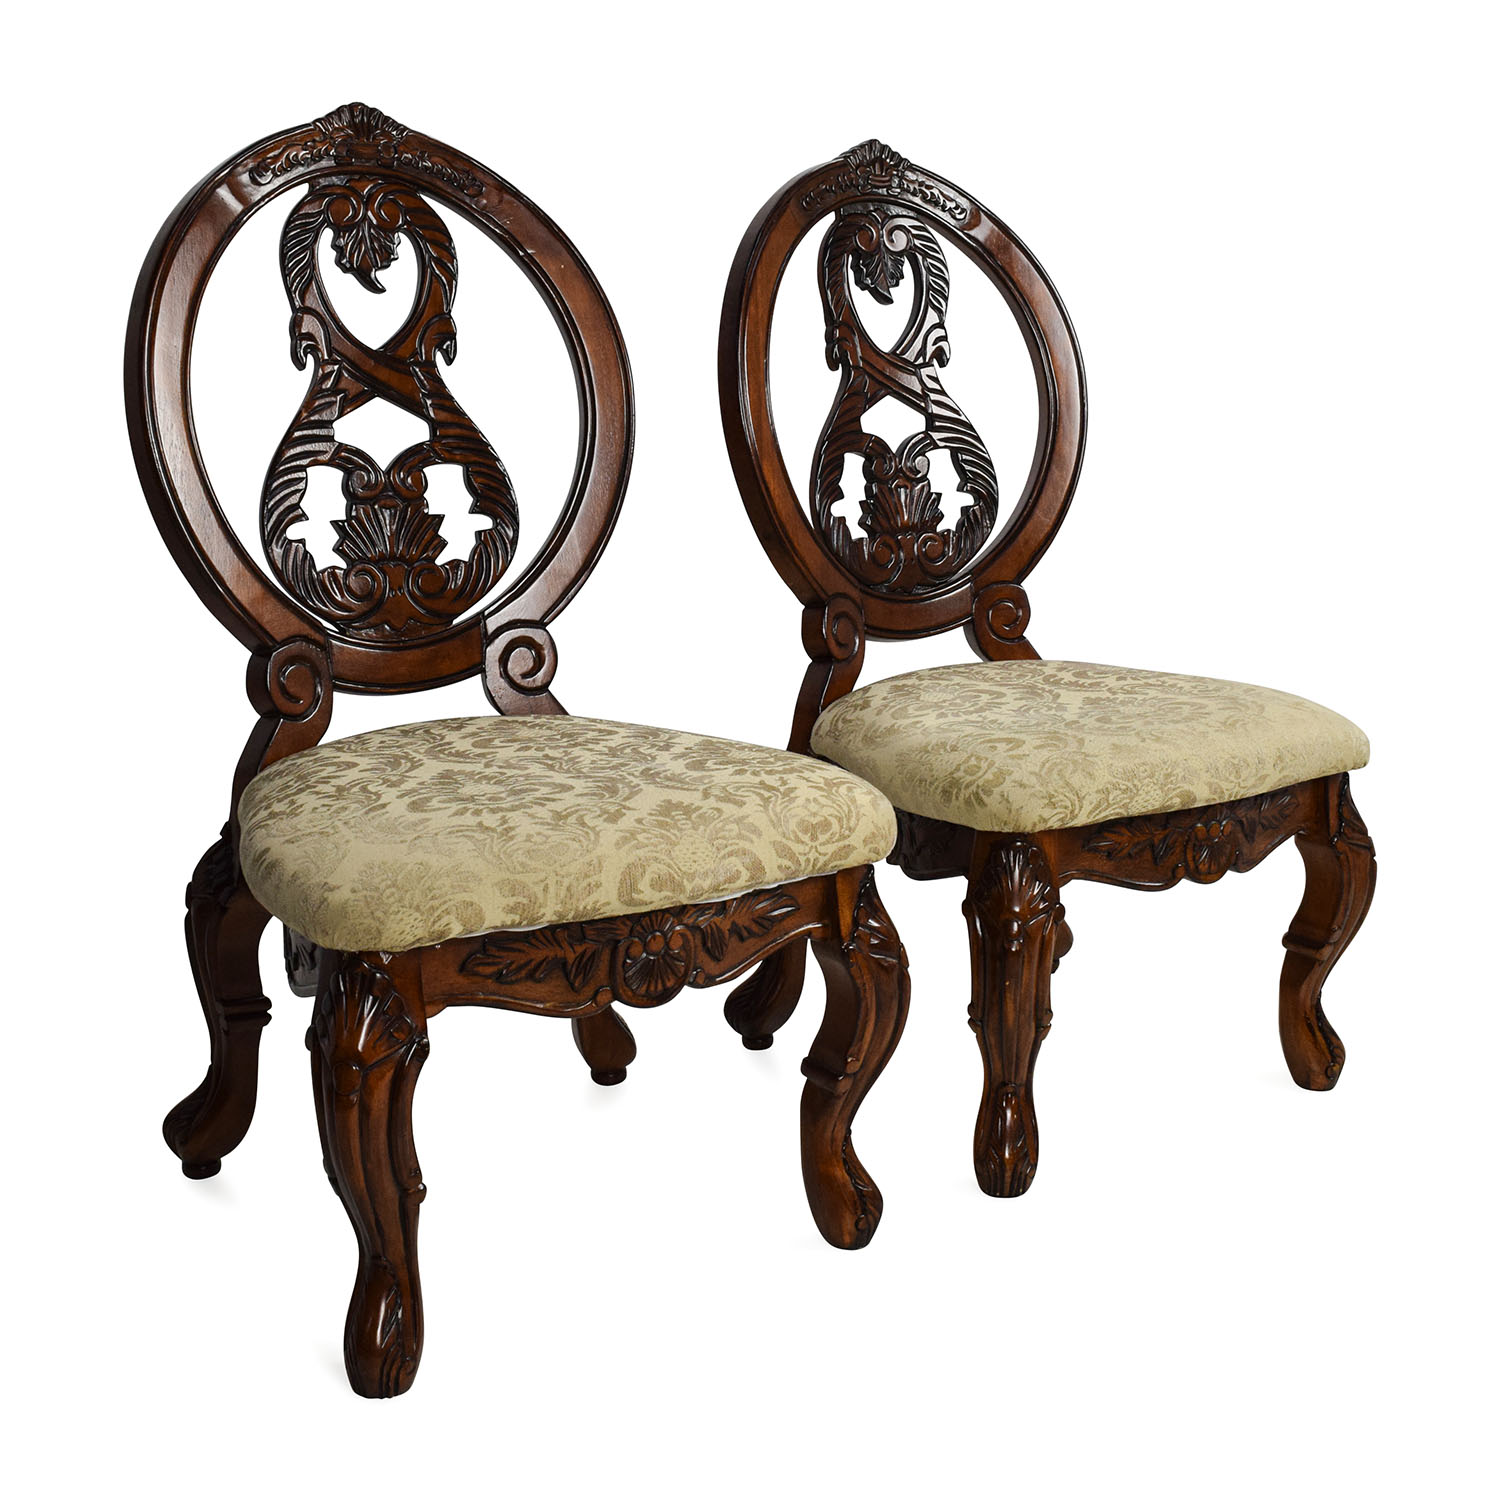 Traditional Dining Chairs Floors amp Doors Interior Design